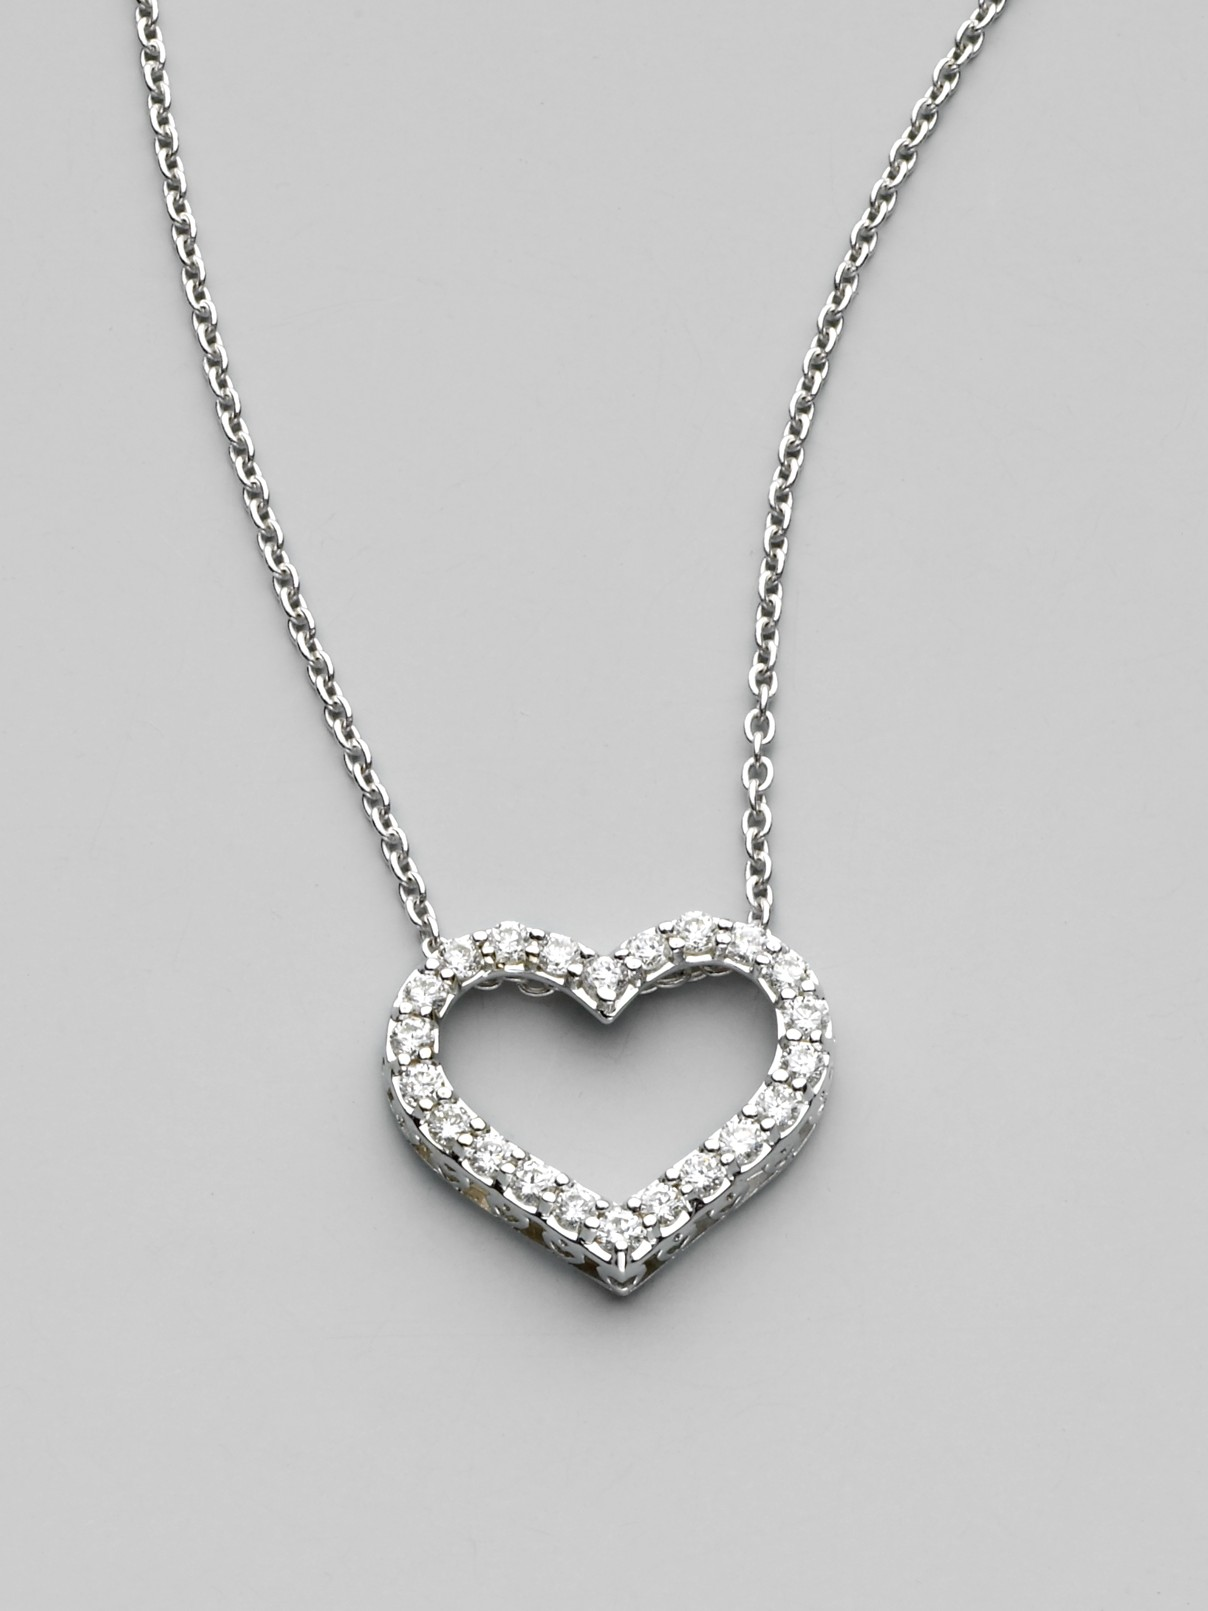 Roberto coin Diamond & 18k White Gold Open Heart Necklace ¾ in